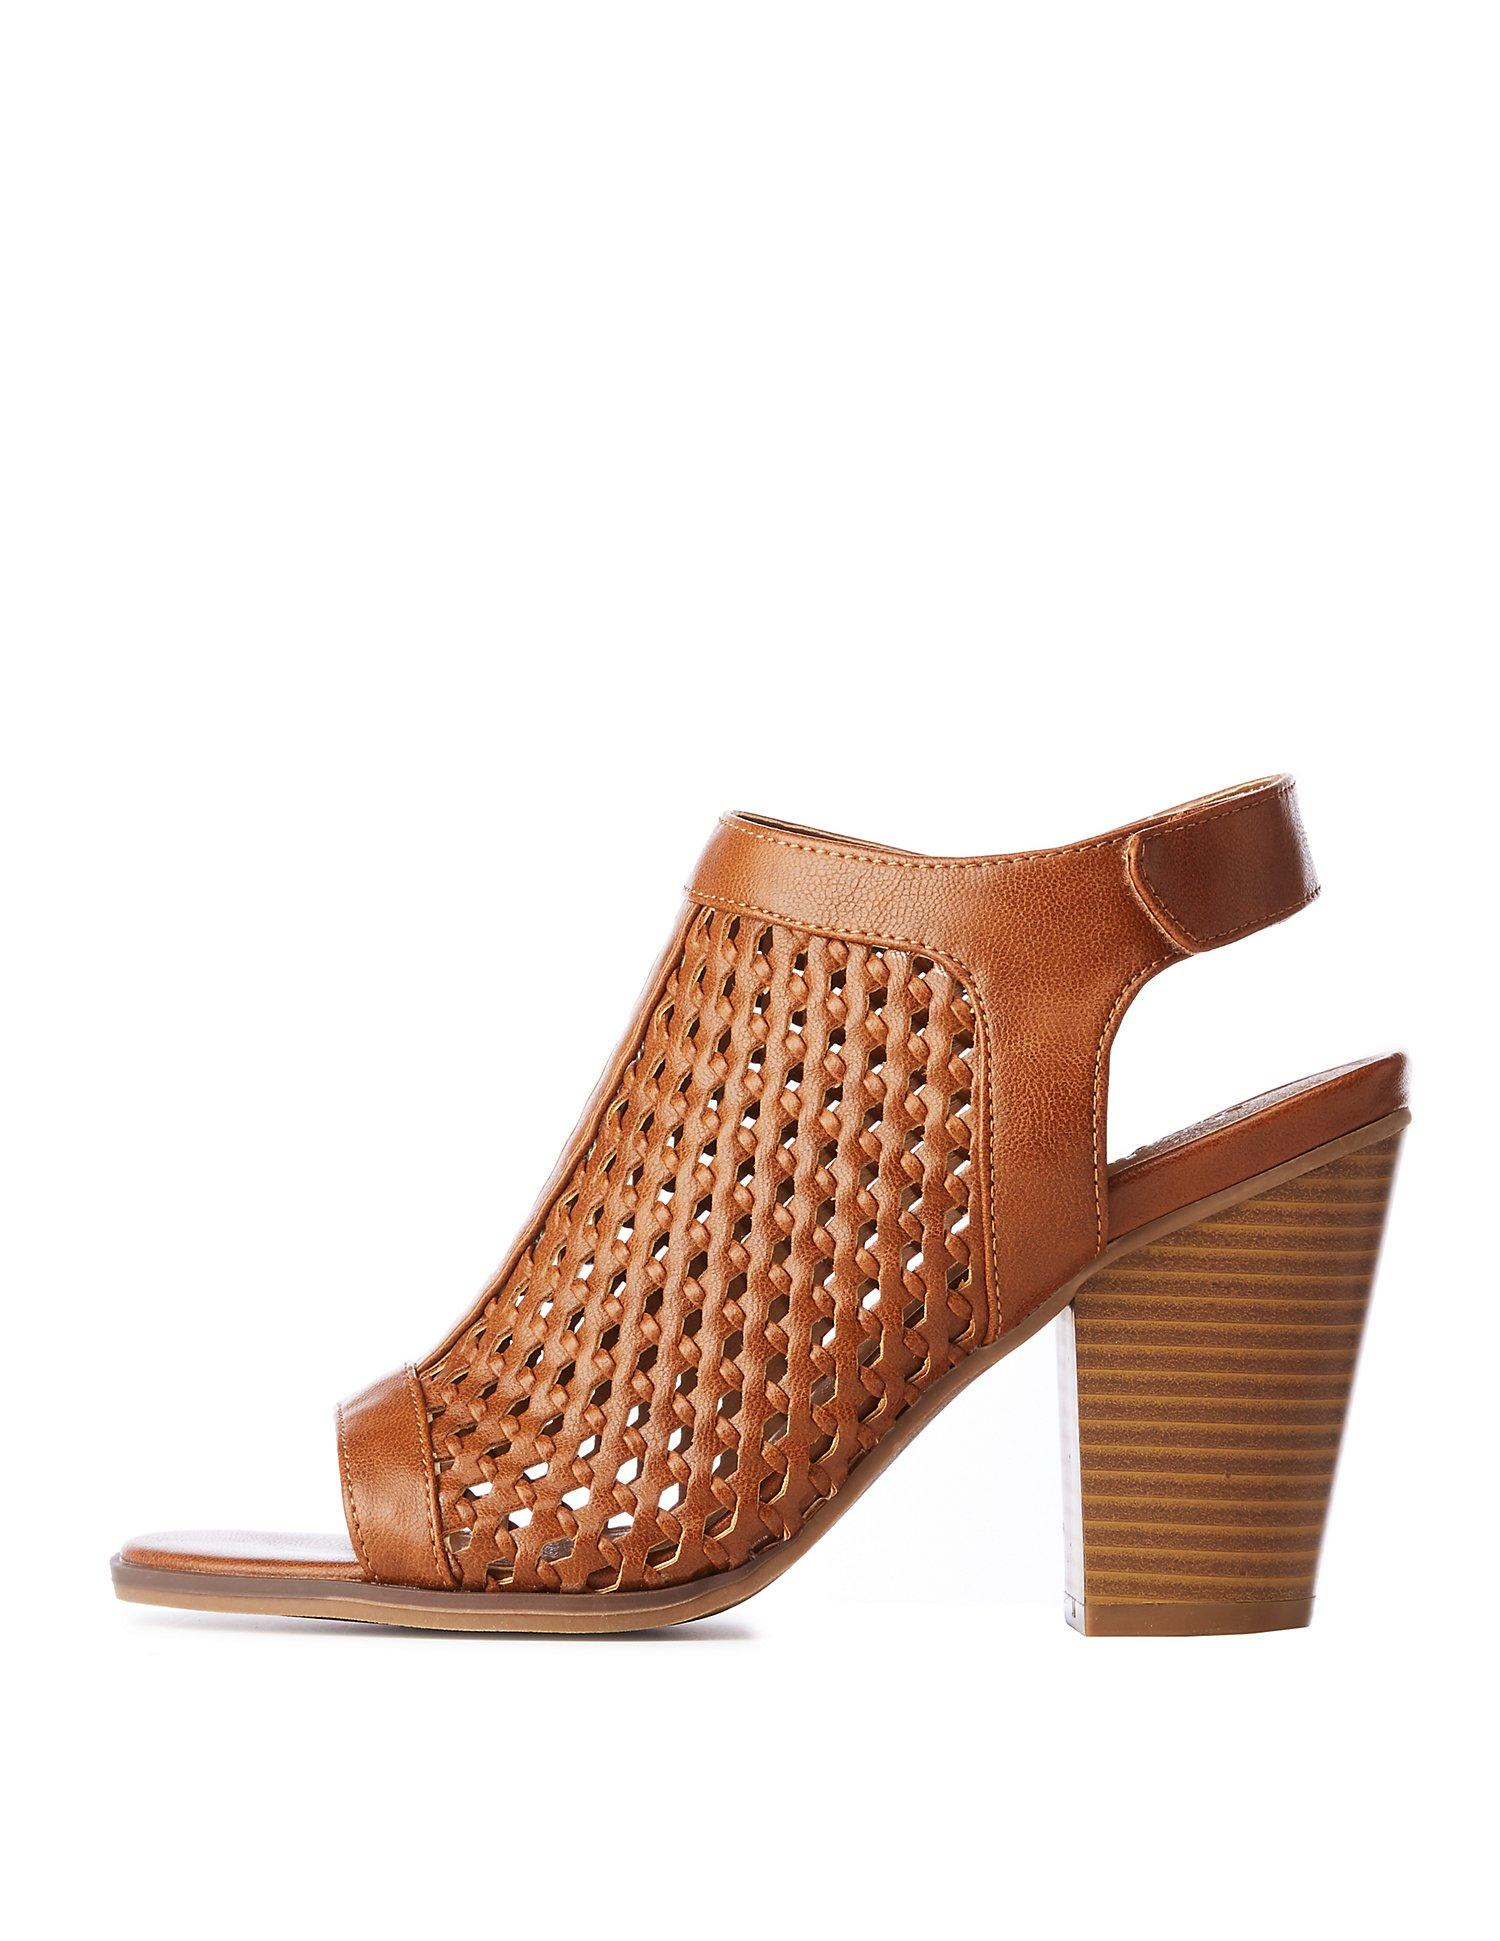 f89dbf0f09d9 Lyst - Charlotte Russe Perforated Peep Toe Booties in Brown